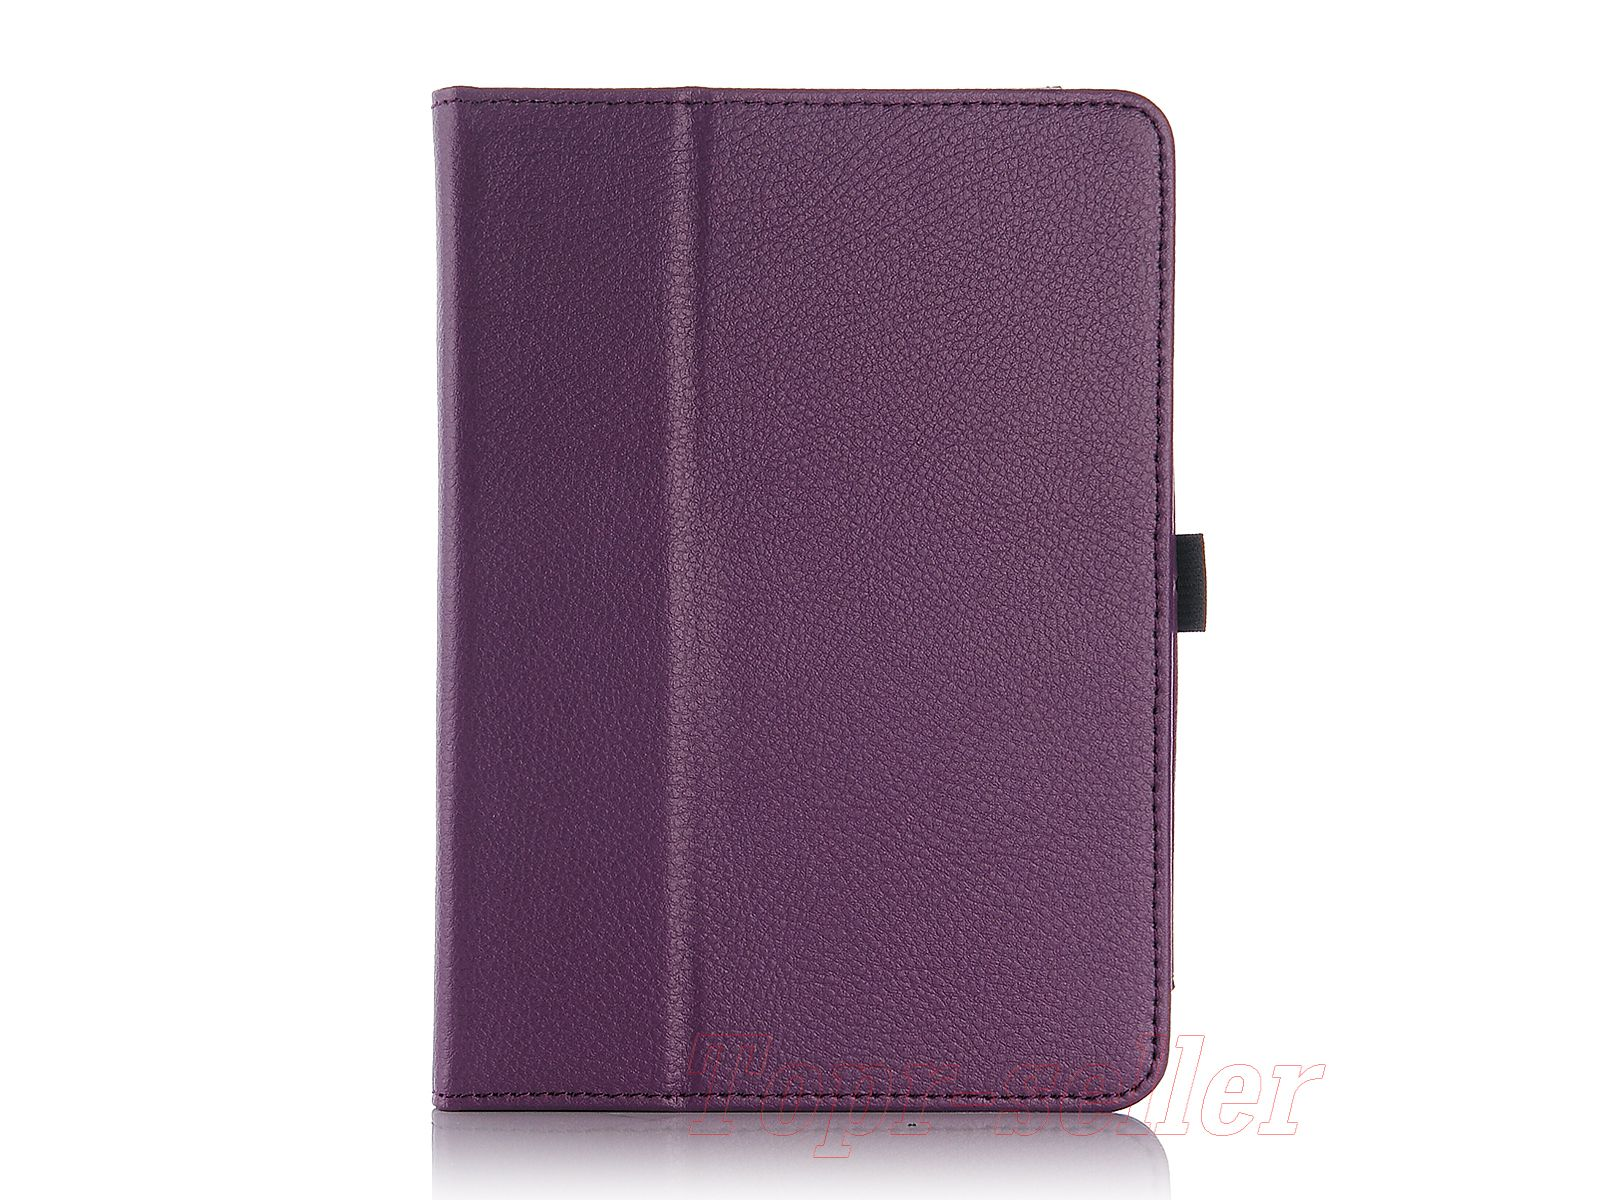 PU Leather Folio Case Cover Stand for  Kindle Fire HD 7